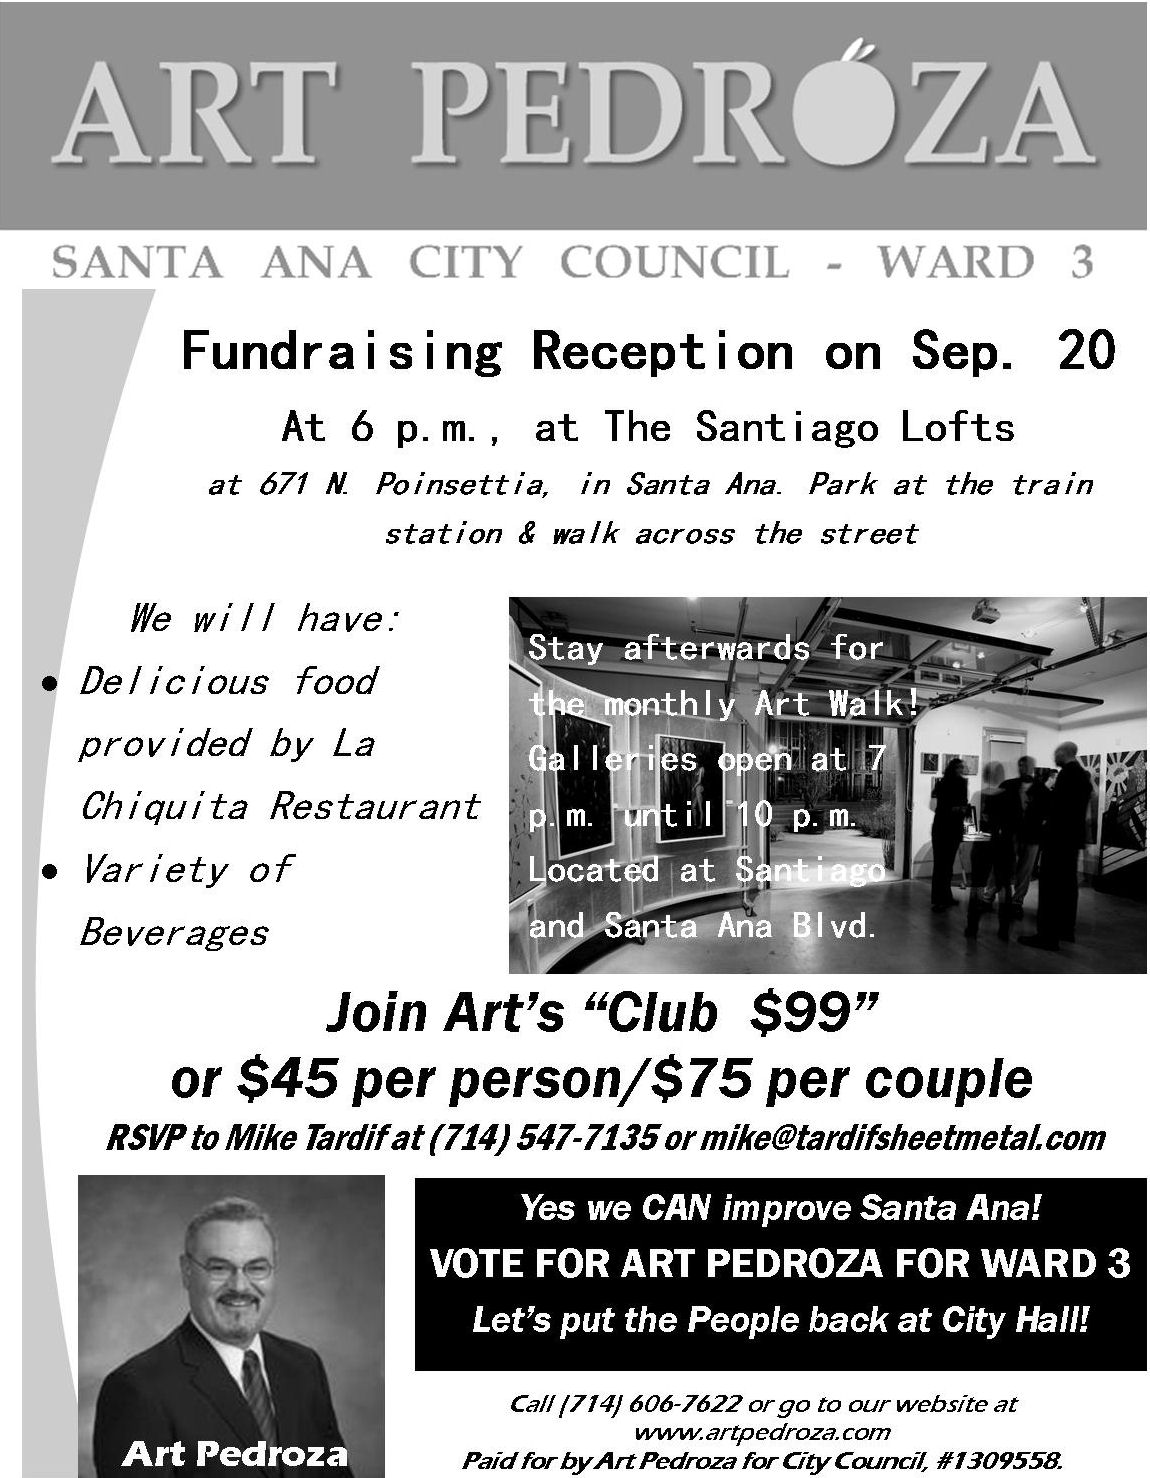 Everyone is invited to attend a festive fundraiser for Art Pedroza's campaign for City Council. Enjoy great comida catered by the famous La Chiquita Restaurant located in Logan Barrio. Take […]